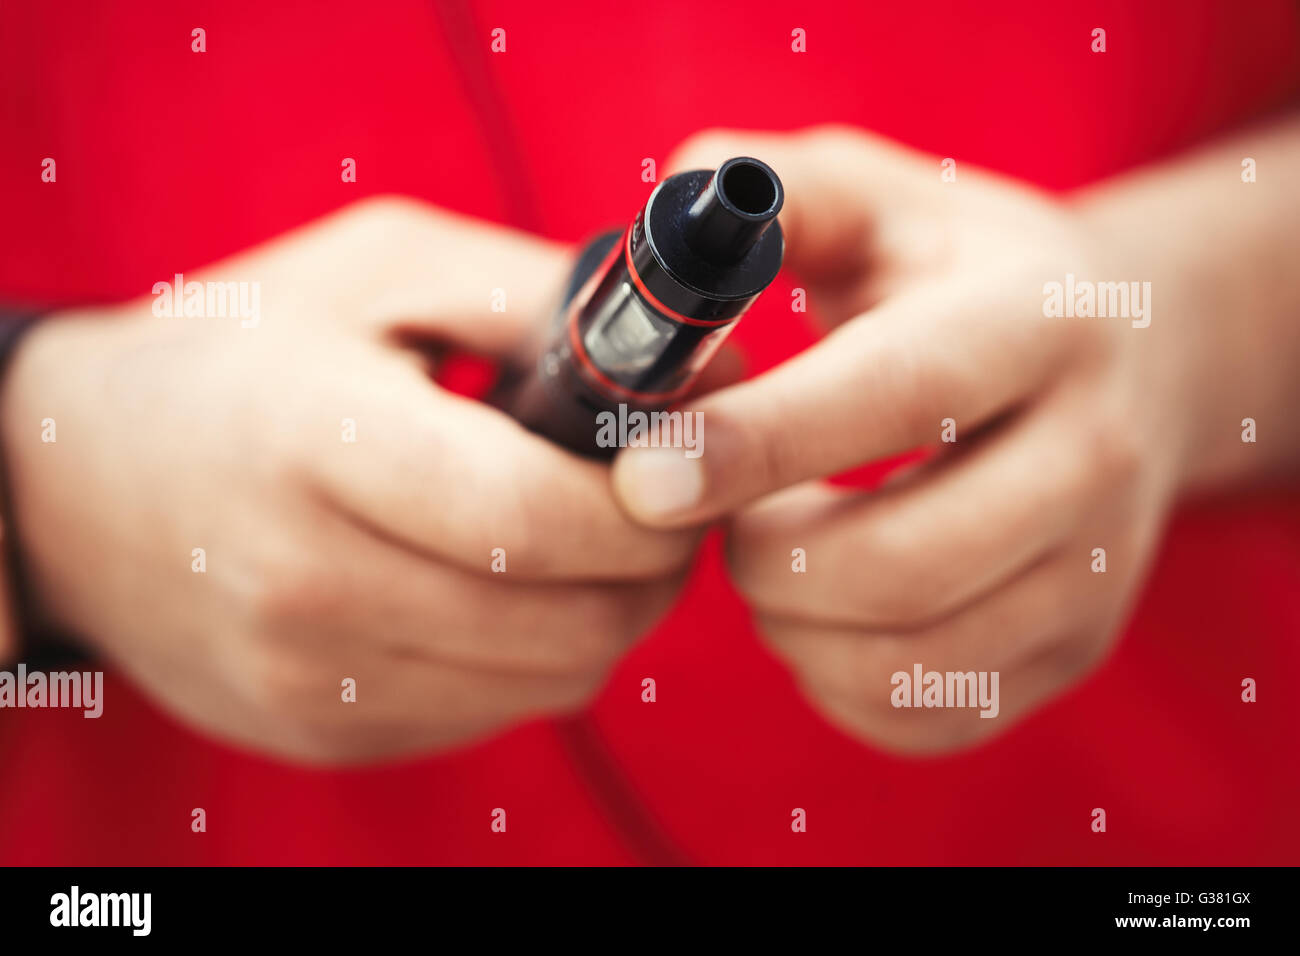 Hands of african male model using modern e-cig vaporizer device for smoking glycerine liquid tobacco with flavor. - Stock Image